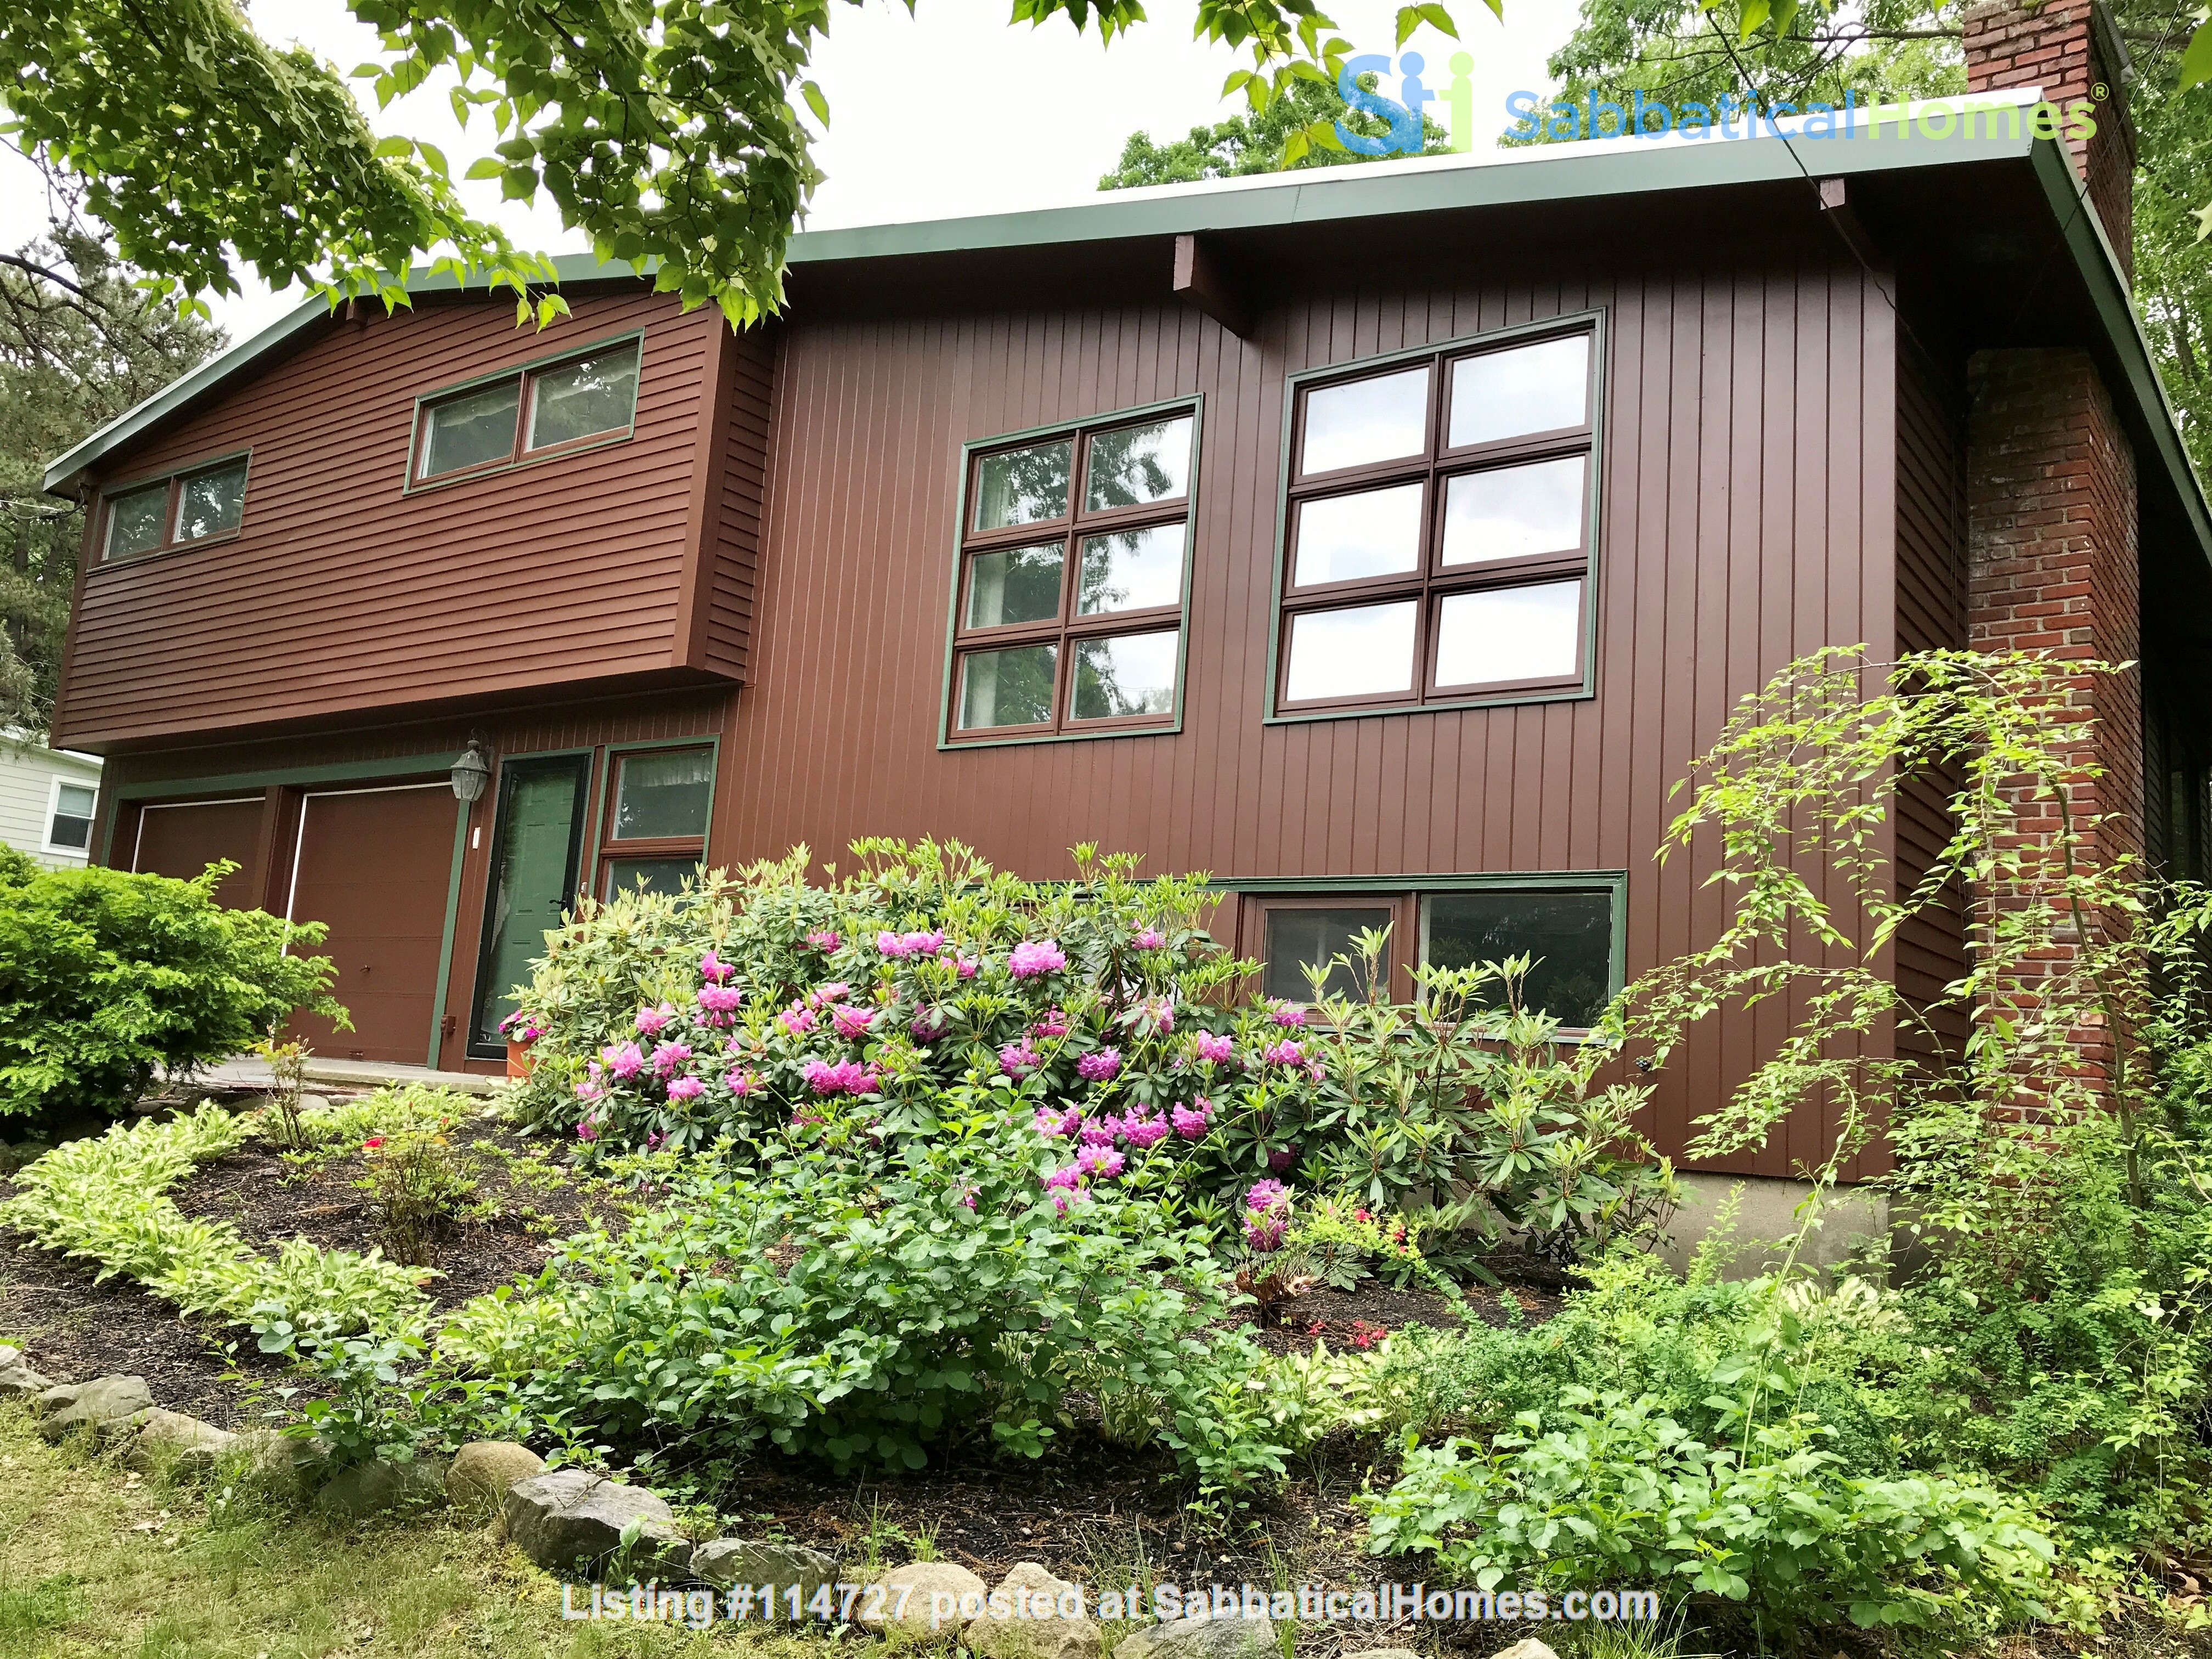 Newly furn &built 2 BR 1025 sq ft apt w/utlts in lux home in Winchester, Ma Home Rental in Winchester, Massachusetts, United States 9